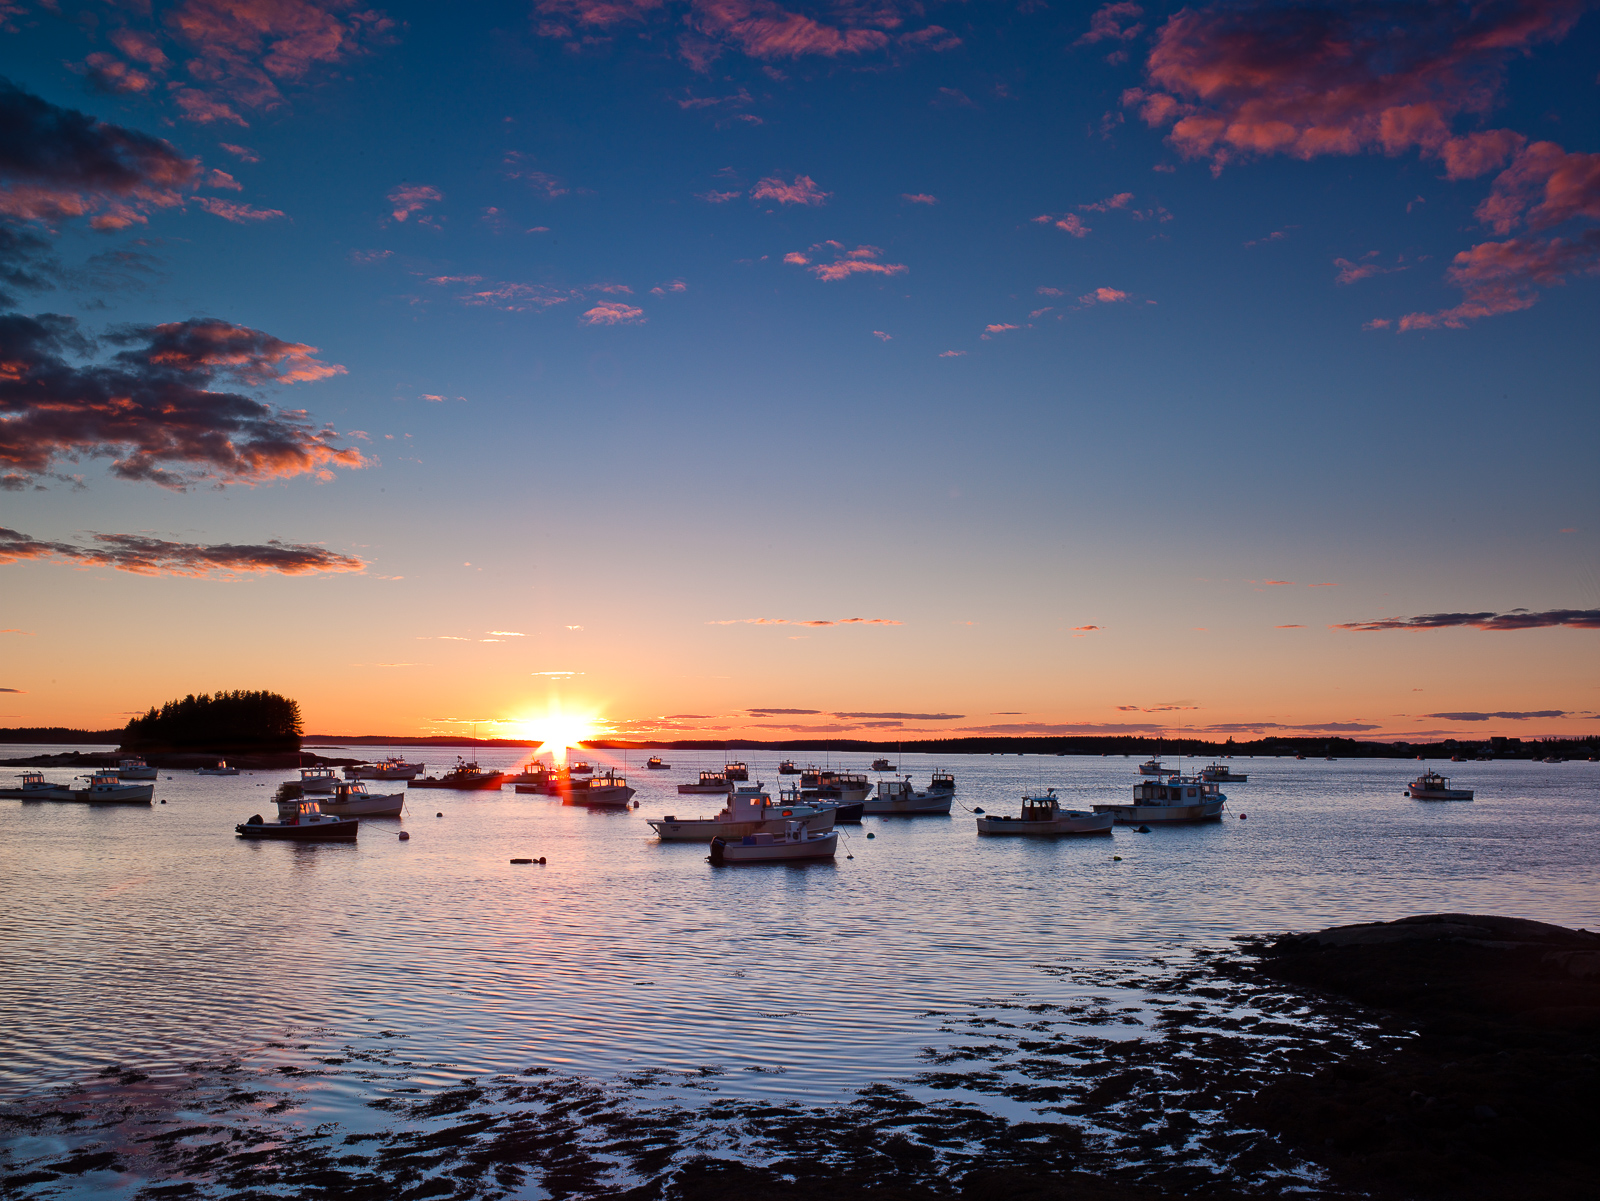 Jonesport Sunset,Fishing Boat,Lobster boat,Maine,New England,Sunset,horizontal, photo